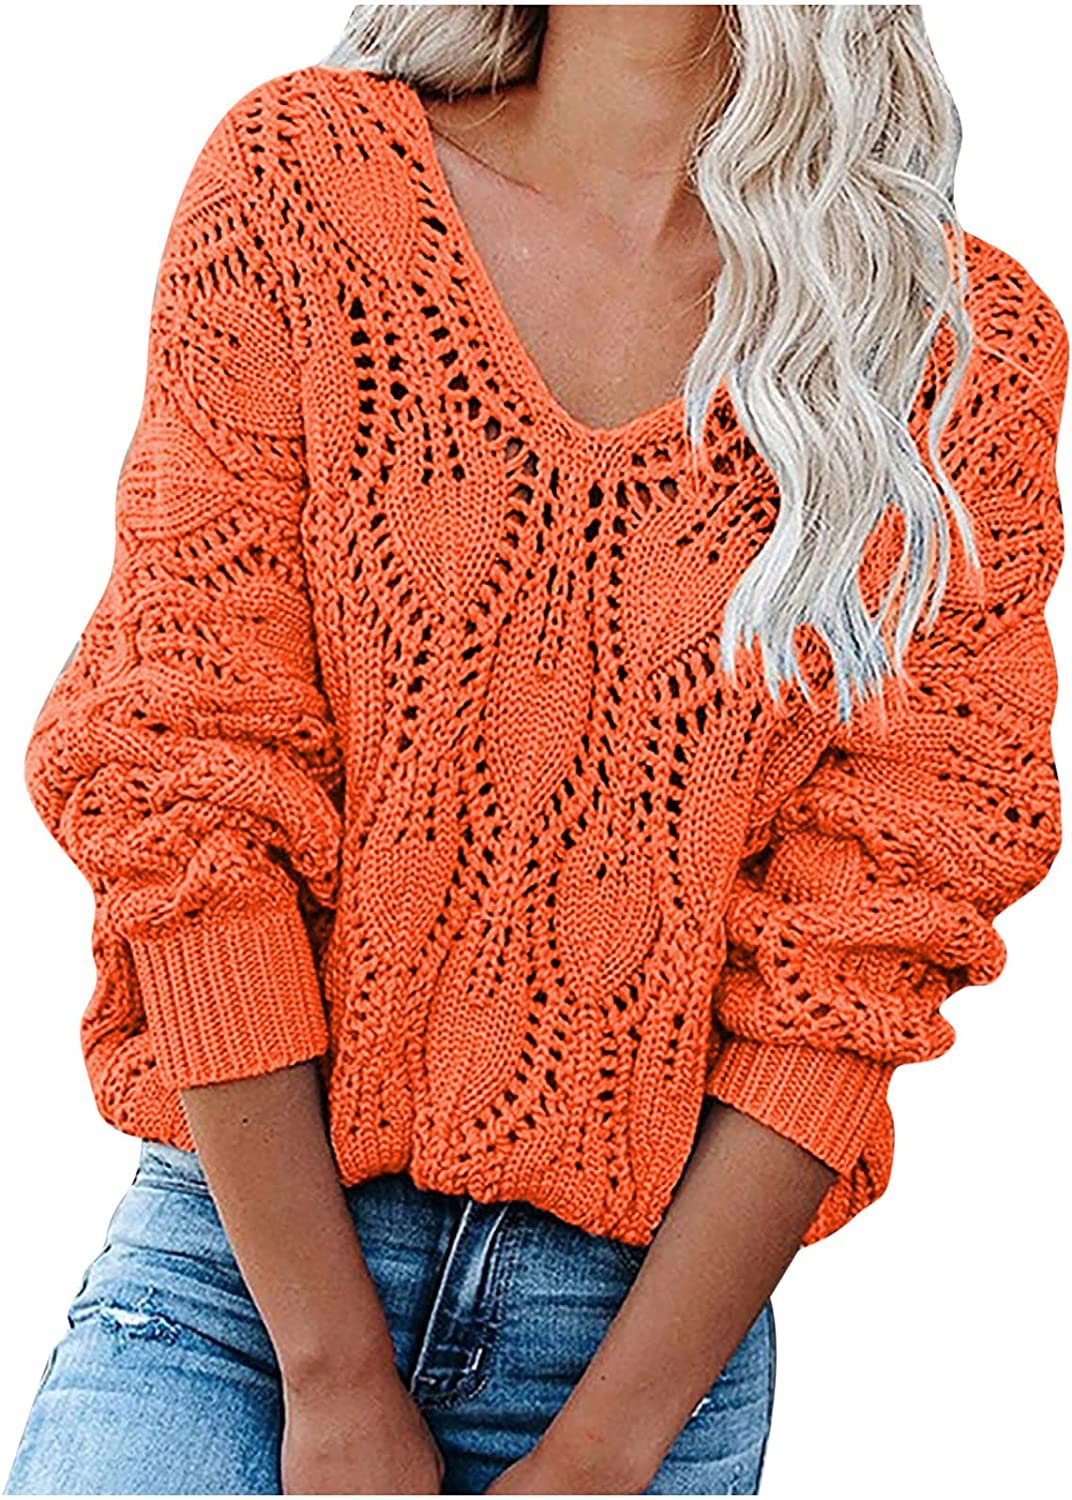 Womens V Neck Long Sleeve Hollow Out Solid Cable Knit Pullover Sweaters Casual Loose Sweatshirts